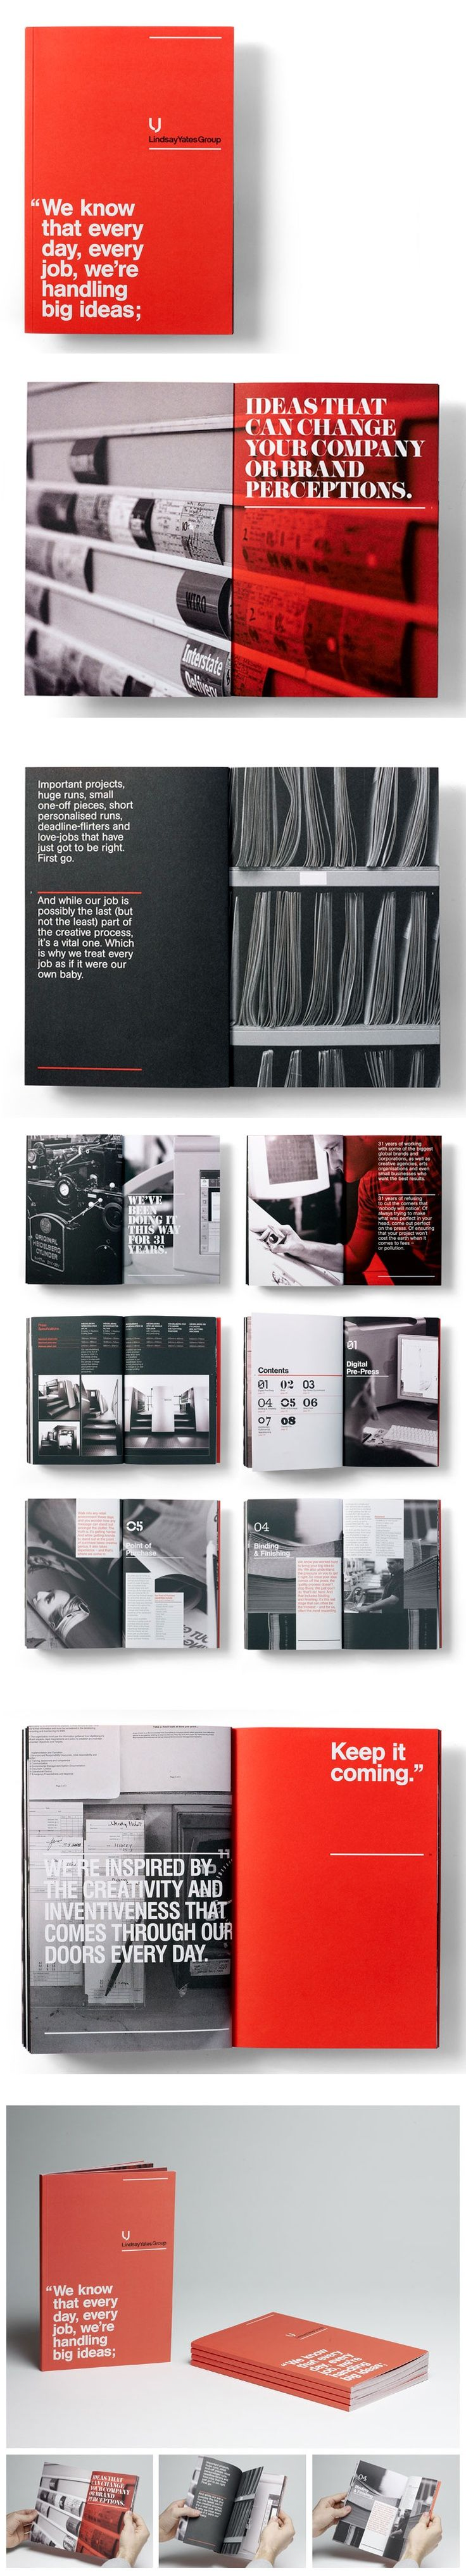 transparent colour wash over photography, emphasis on text, text on photography, contents page: